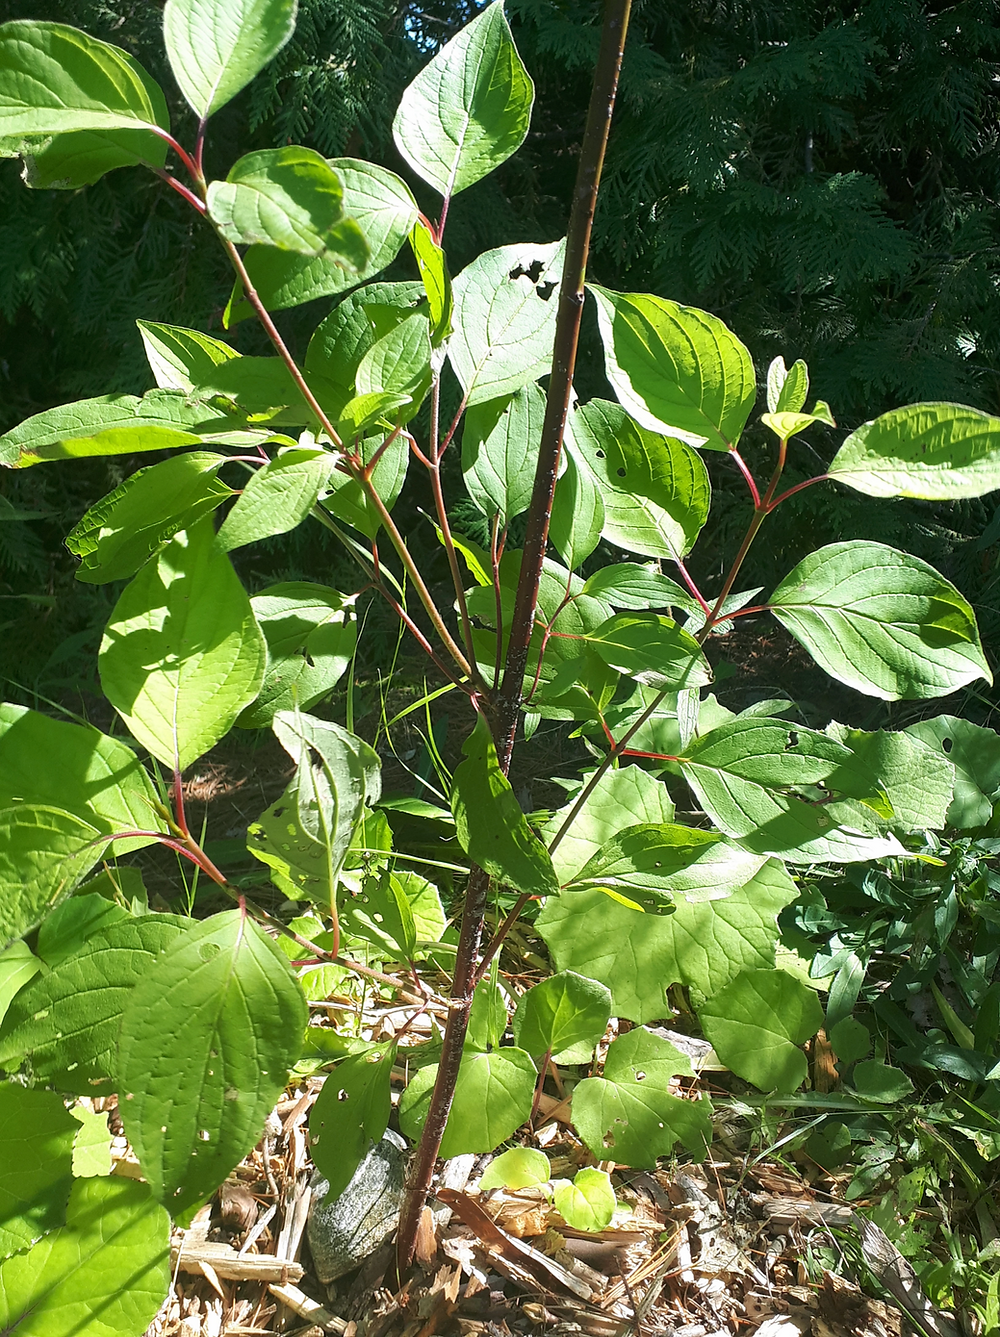 Red osier dogwood (Cornus sericea)